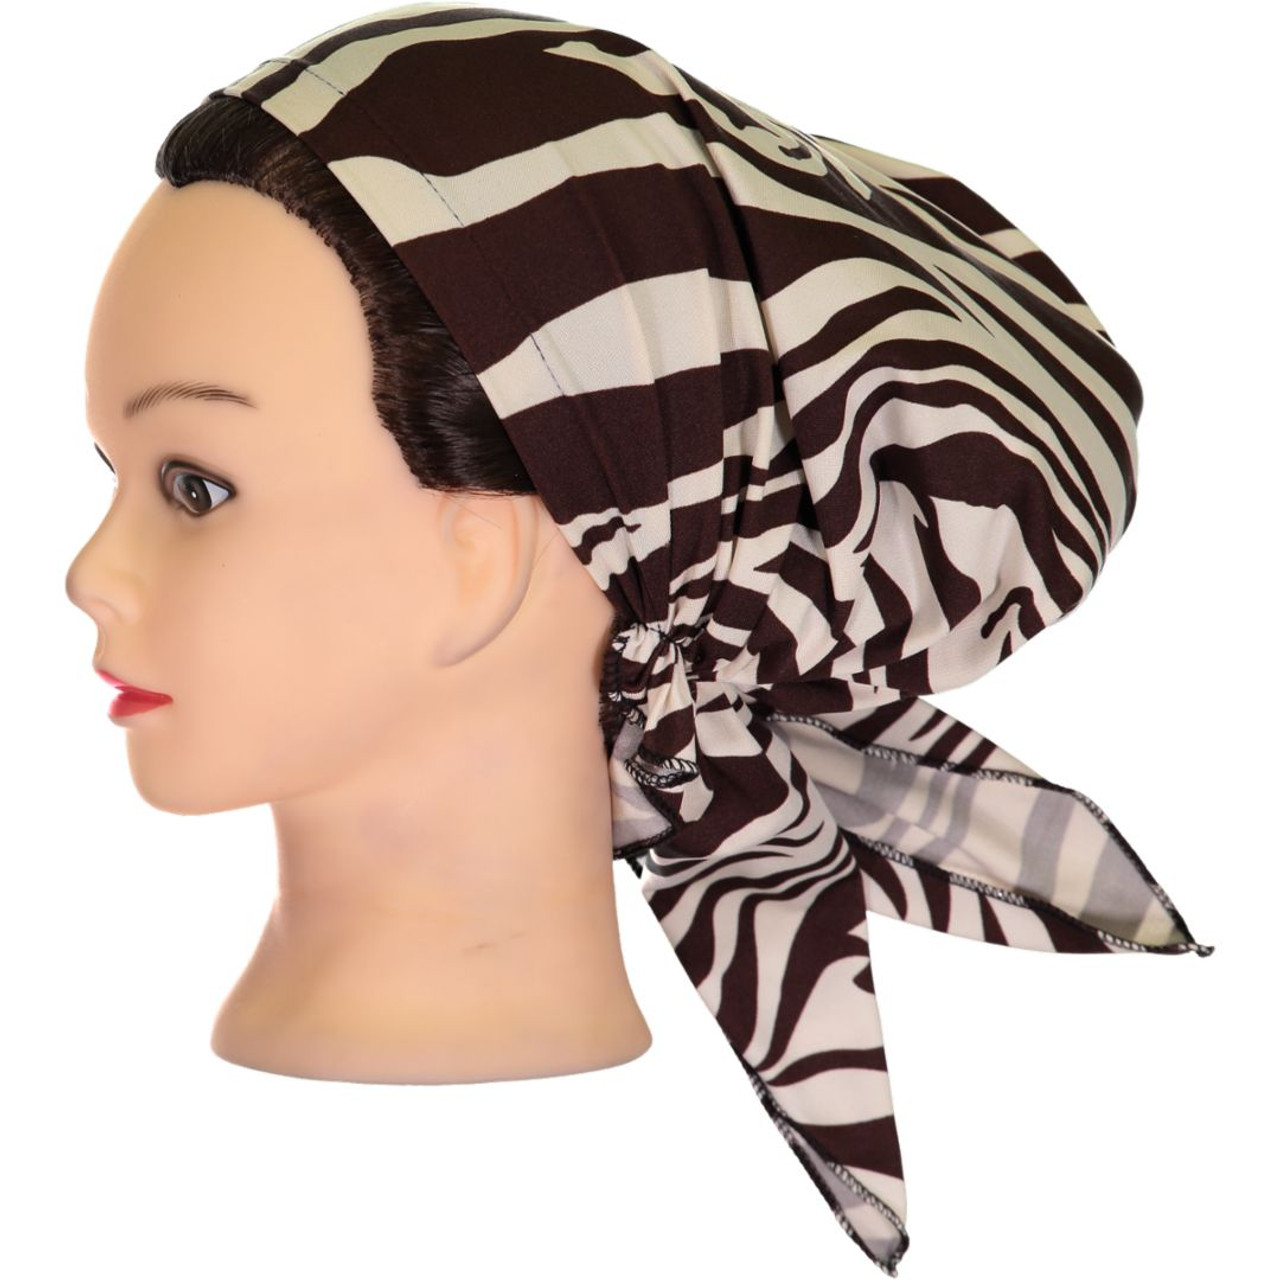 Delore Womens Brown/Tan Giraffe Pre-Tied Bandana